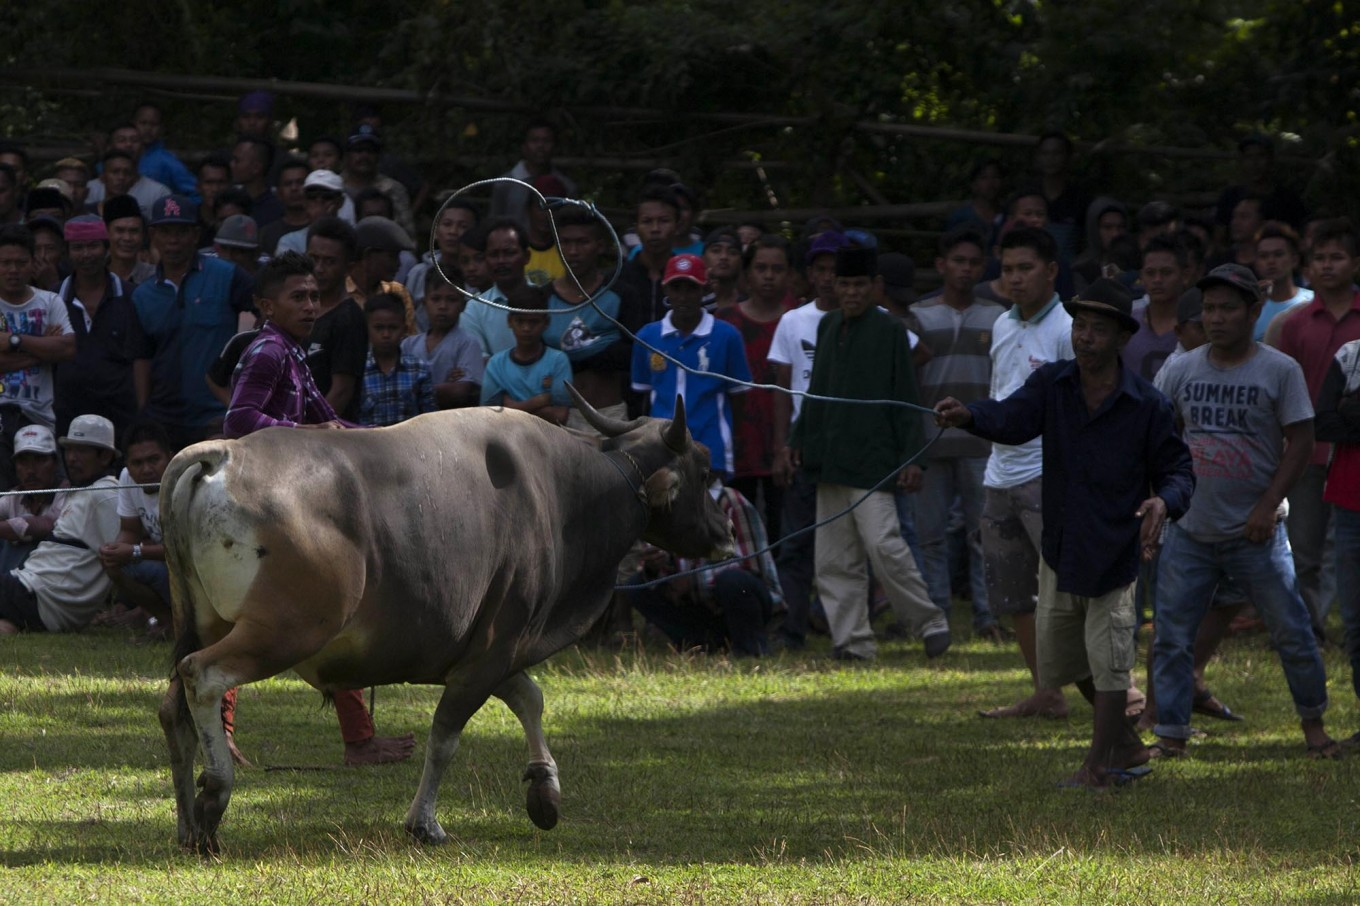 A handler catches a bull with a lasso. JP/Sigit Pamungkas